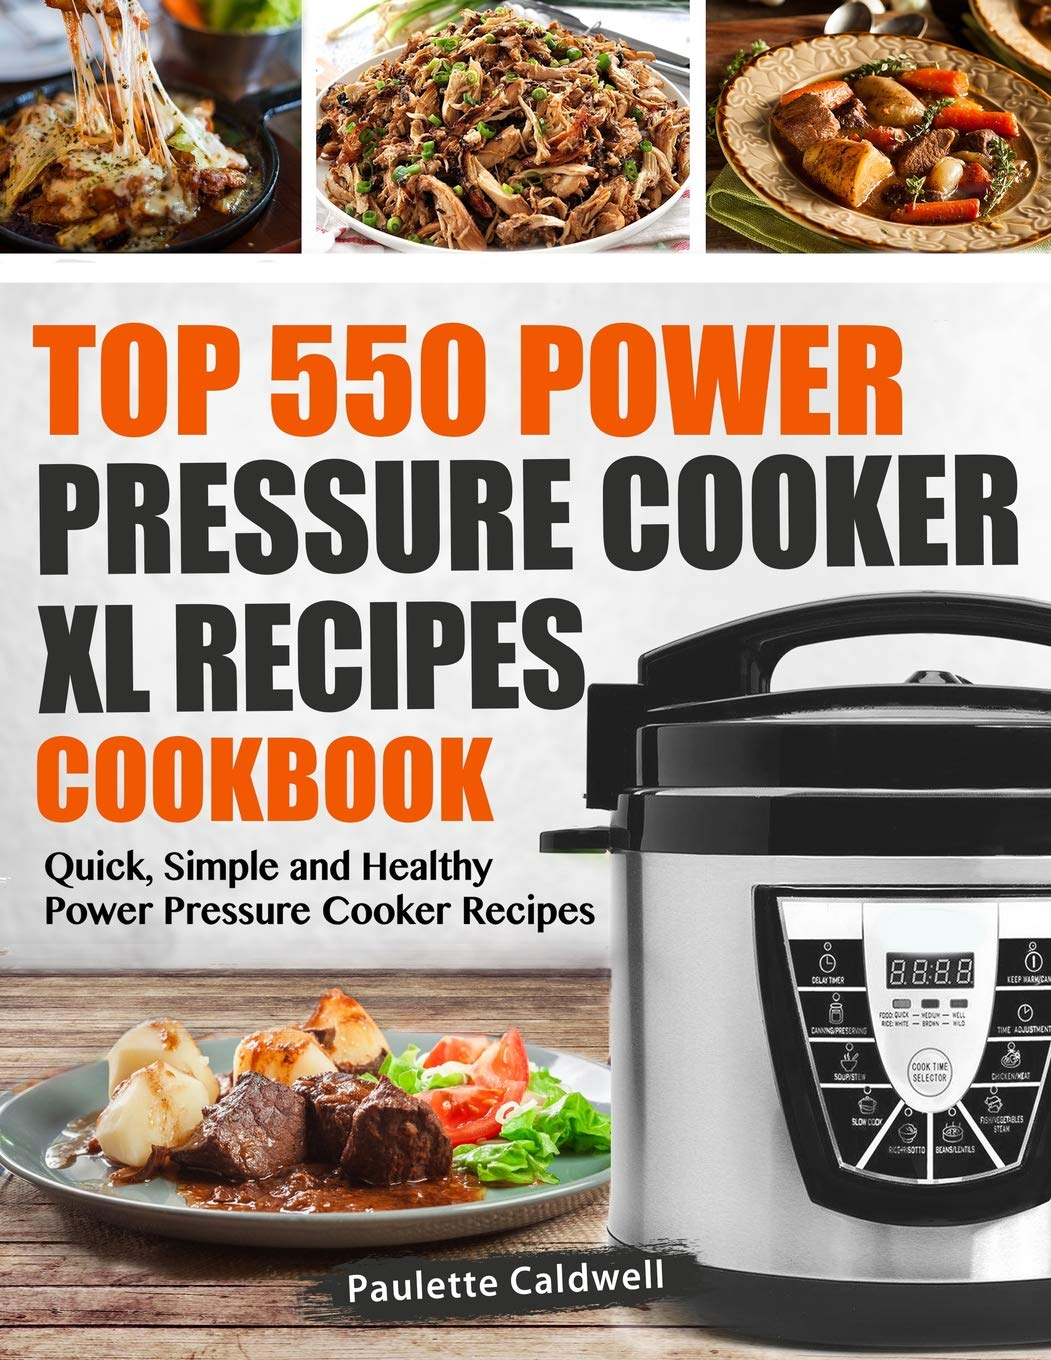 Top 550 Power Pressure Cooker Xl Recipes Cookbook Quick Simple And Healthy Power Pressure Cooker Recipes Power Pressure Cooker Xl Cookbook Caldwell Paulette 9781730734076 Amazon Com Books